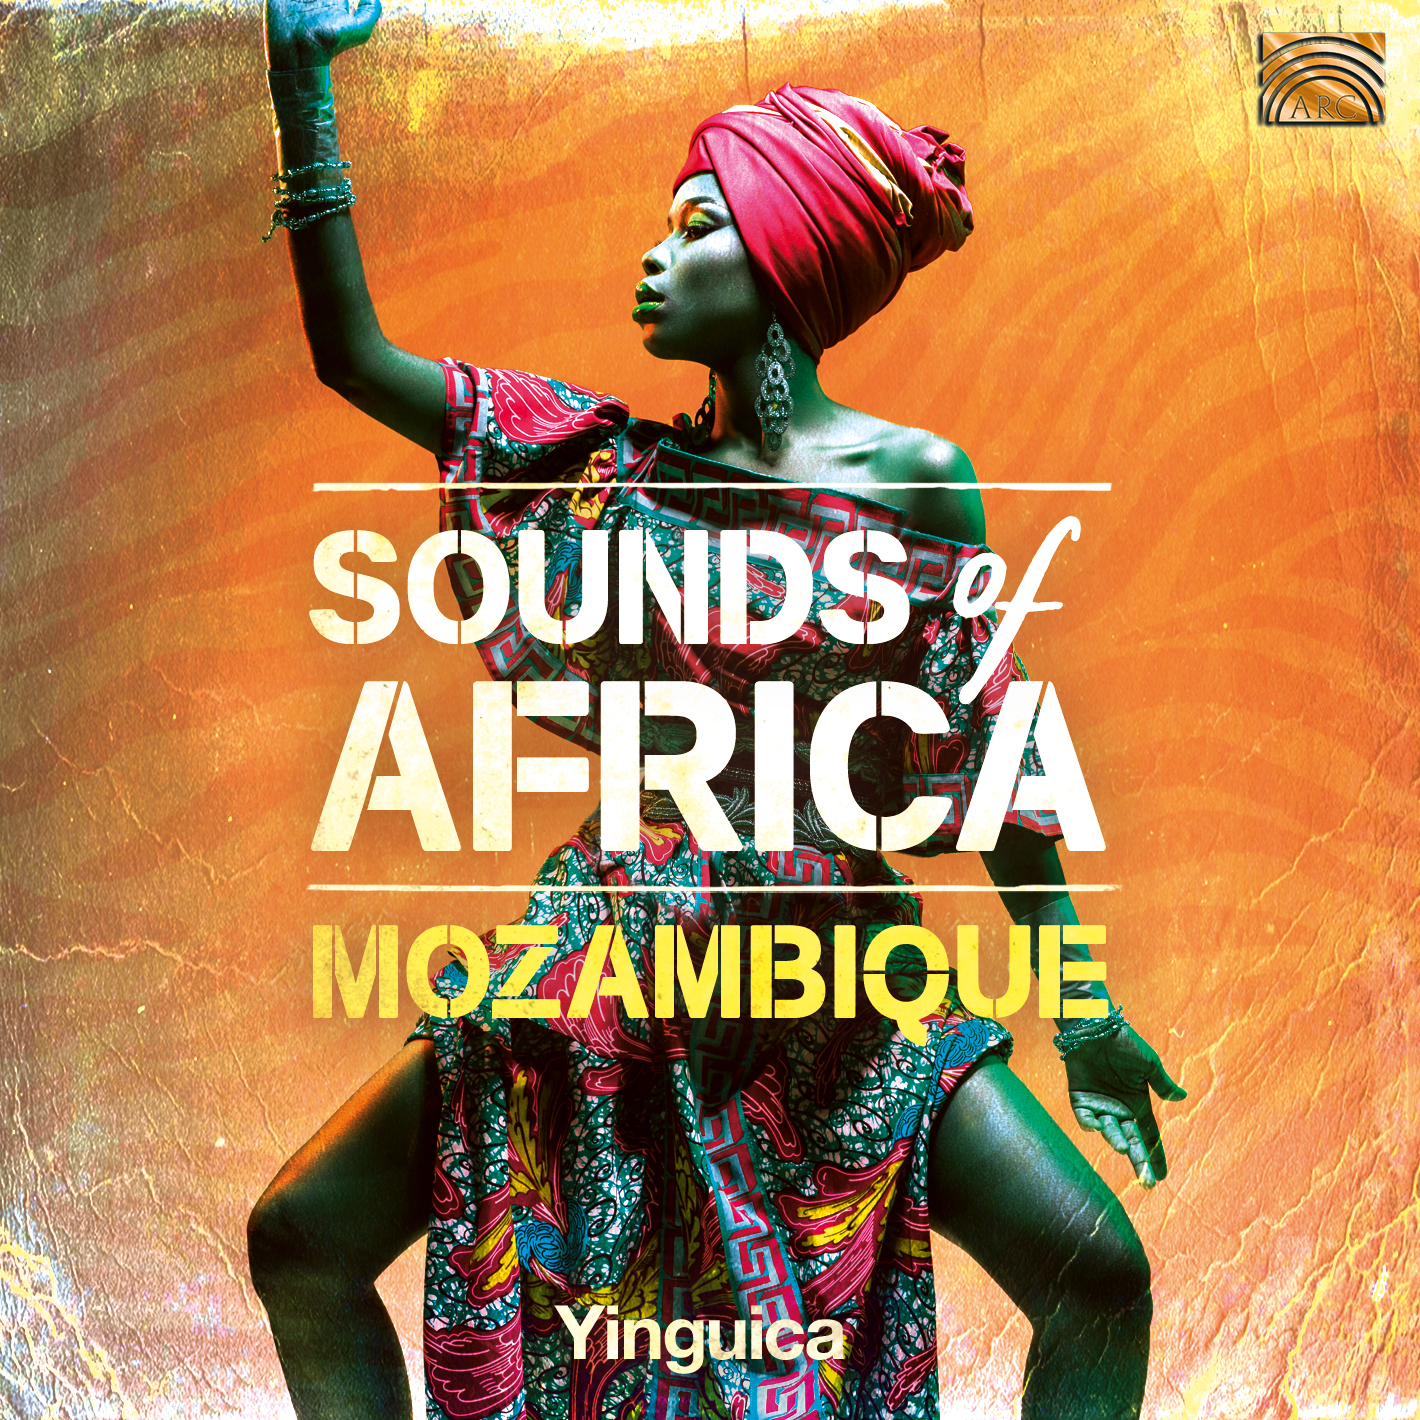 EUCD2868 Sounds of Africa - Mozambique